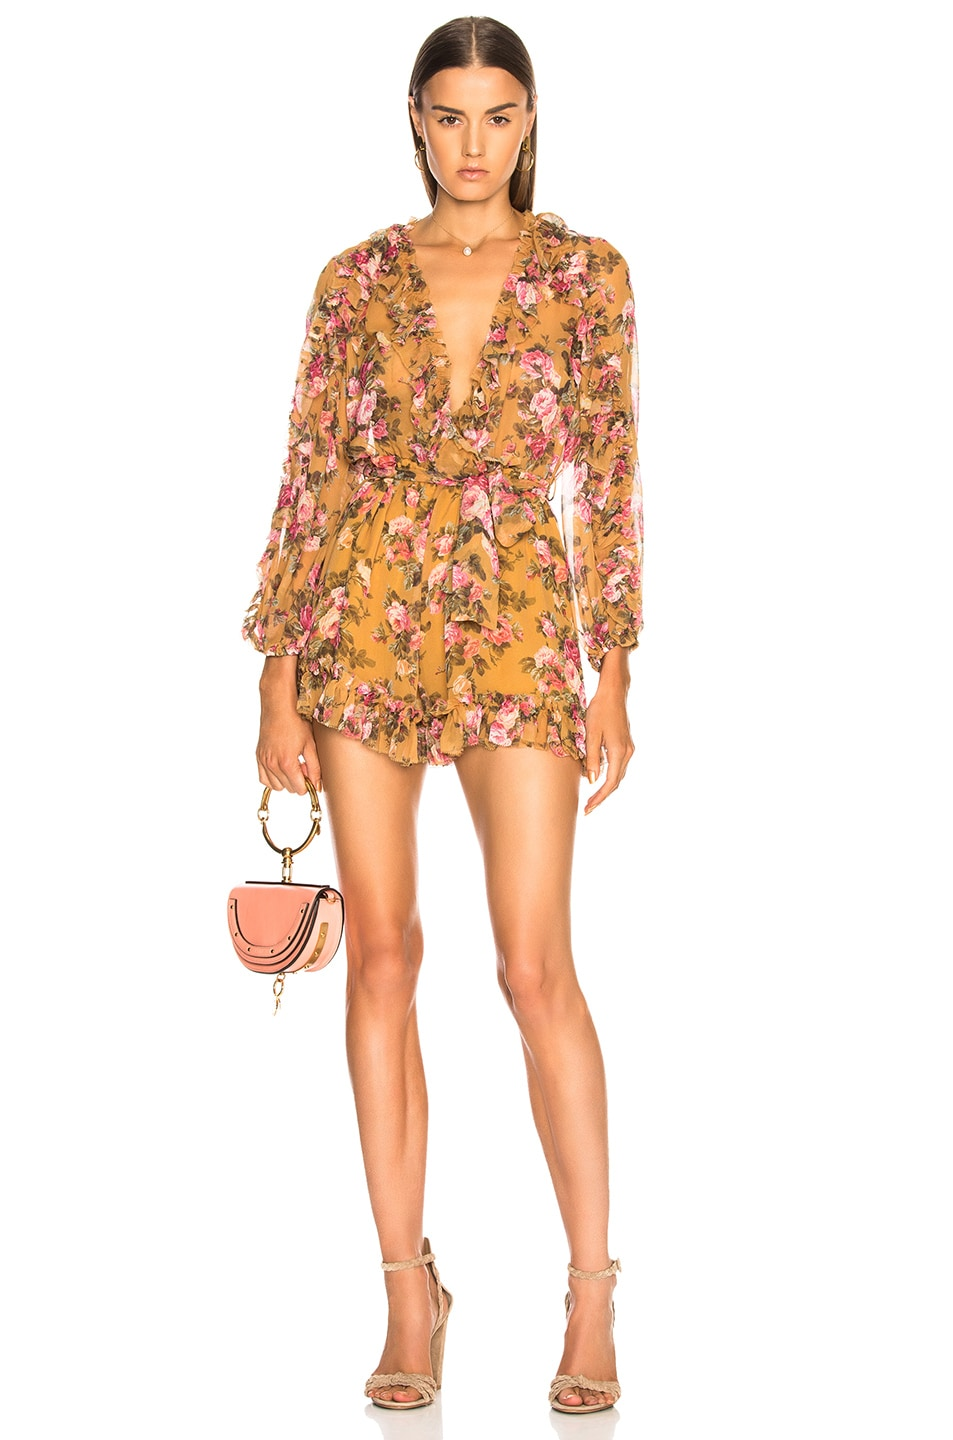 6b0cdeb959e Image 1 of Zimmermann Golden Ruffle Playsuit in Sienna Bouquet Floral